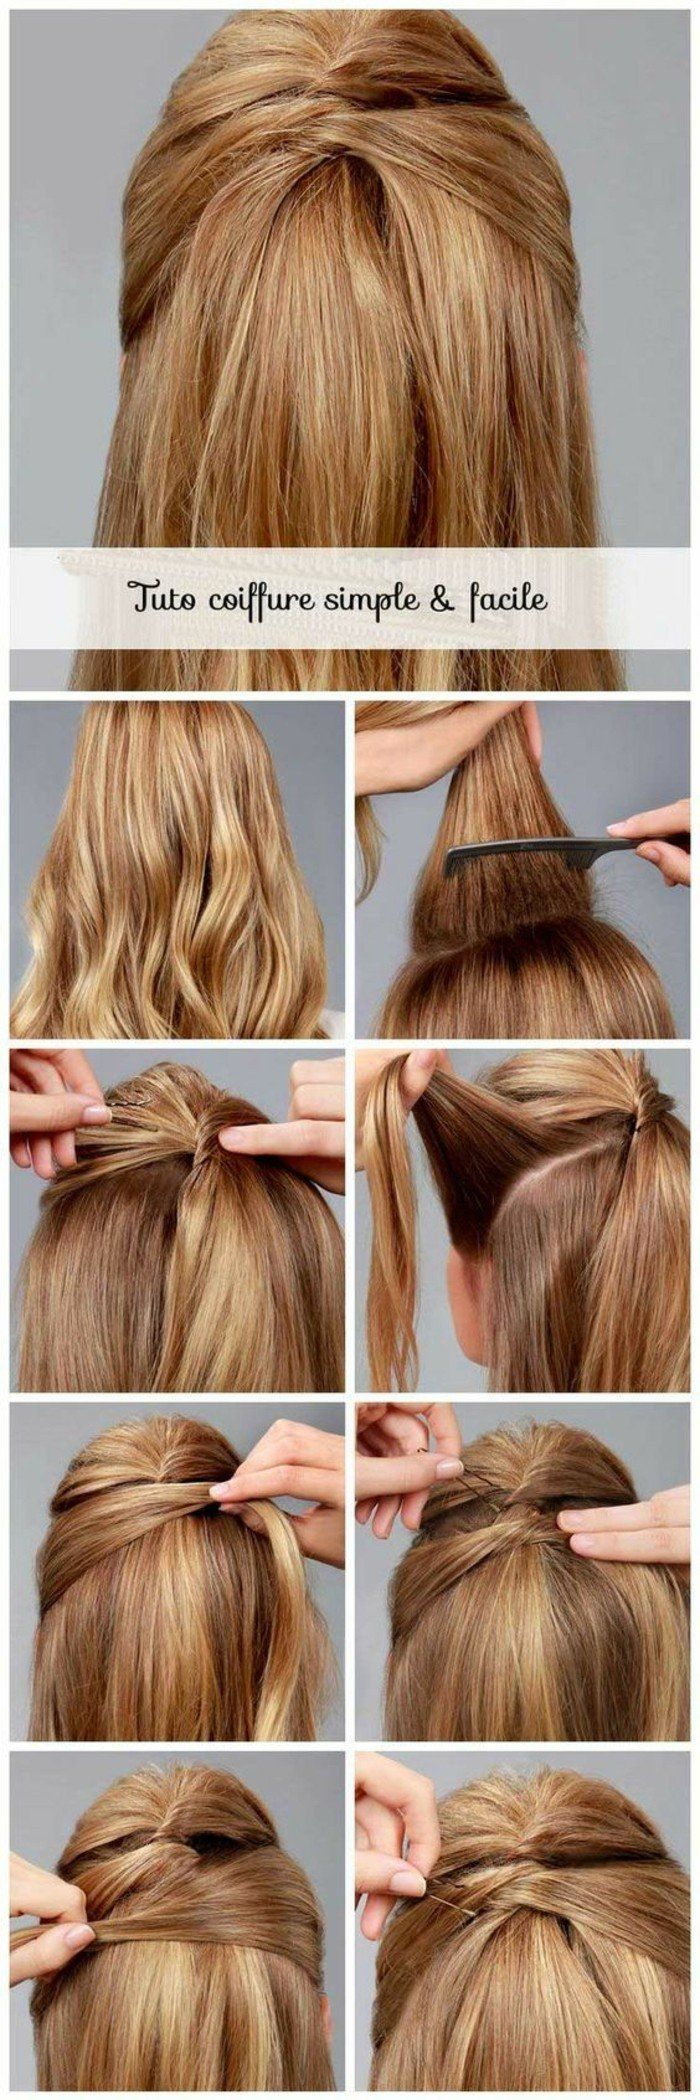 1000 Ideas About Tuto Coiffure Facile On Pinterest Easy